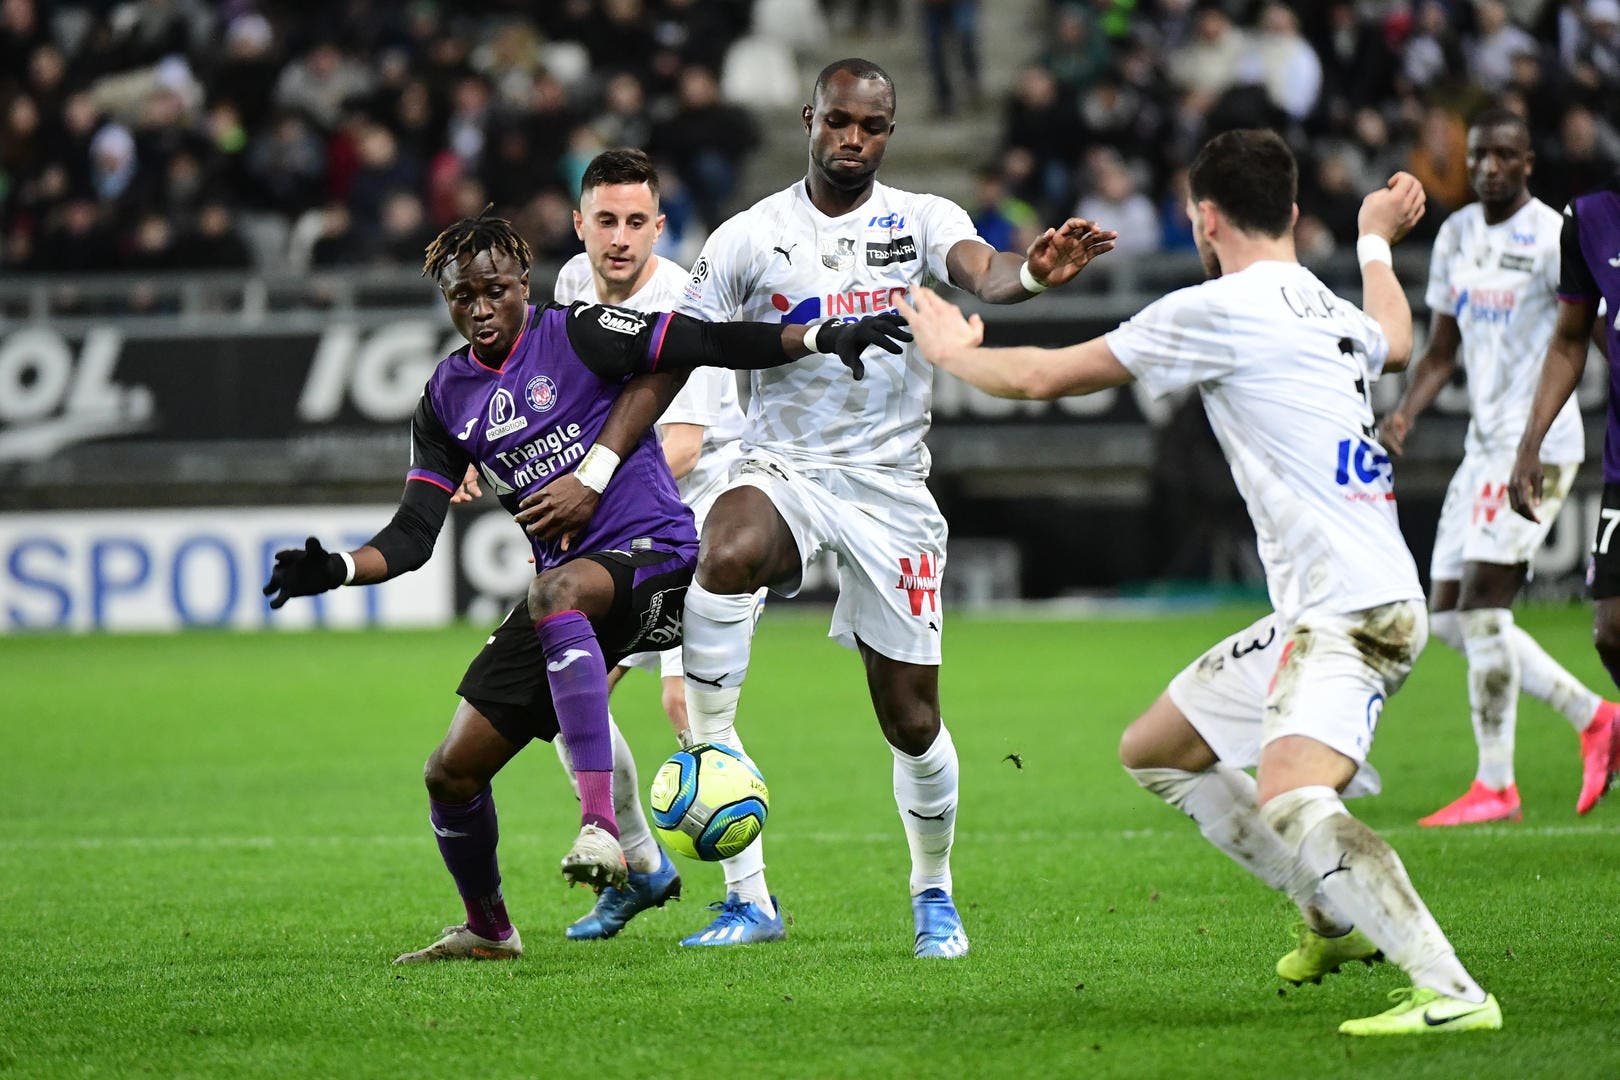 Football Toulouse - Amiens - Toulouse : 0-0 - Foot 01